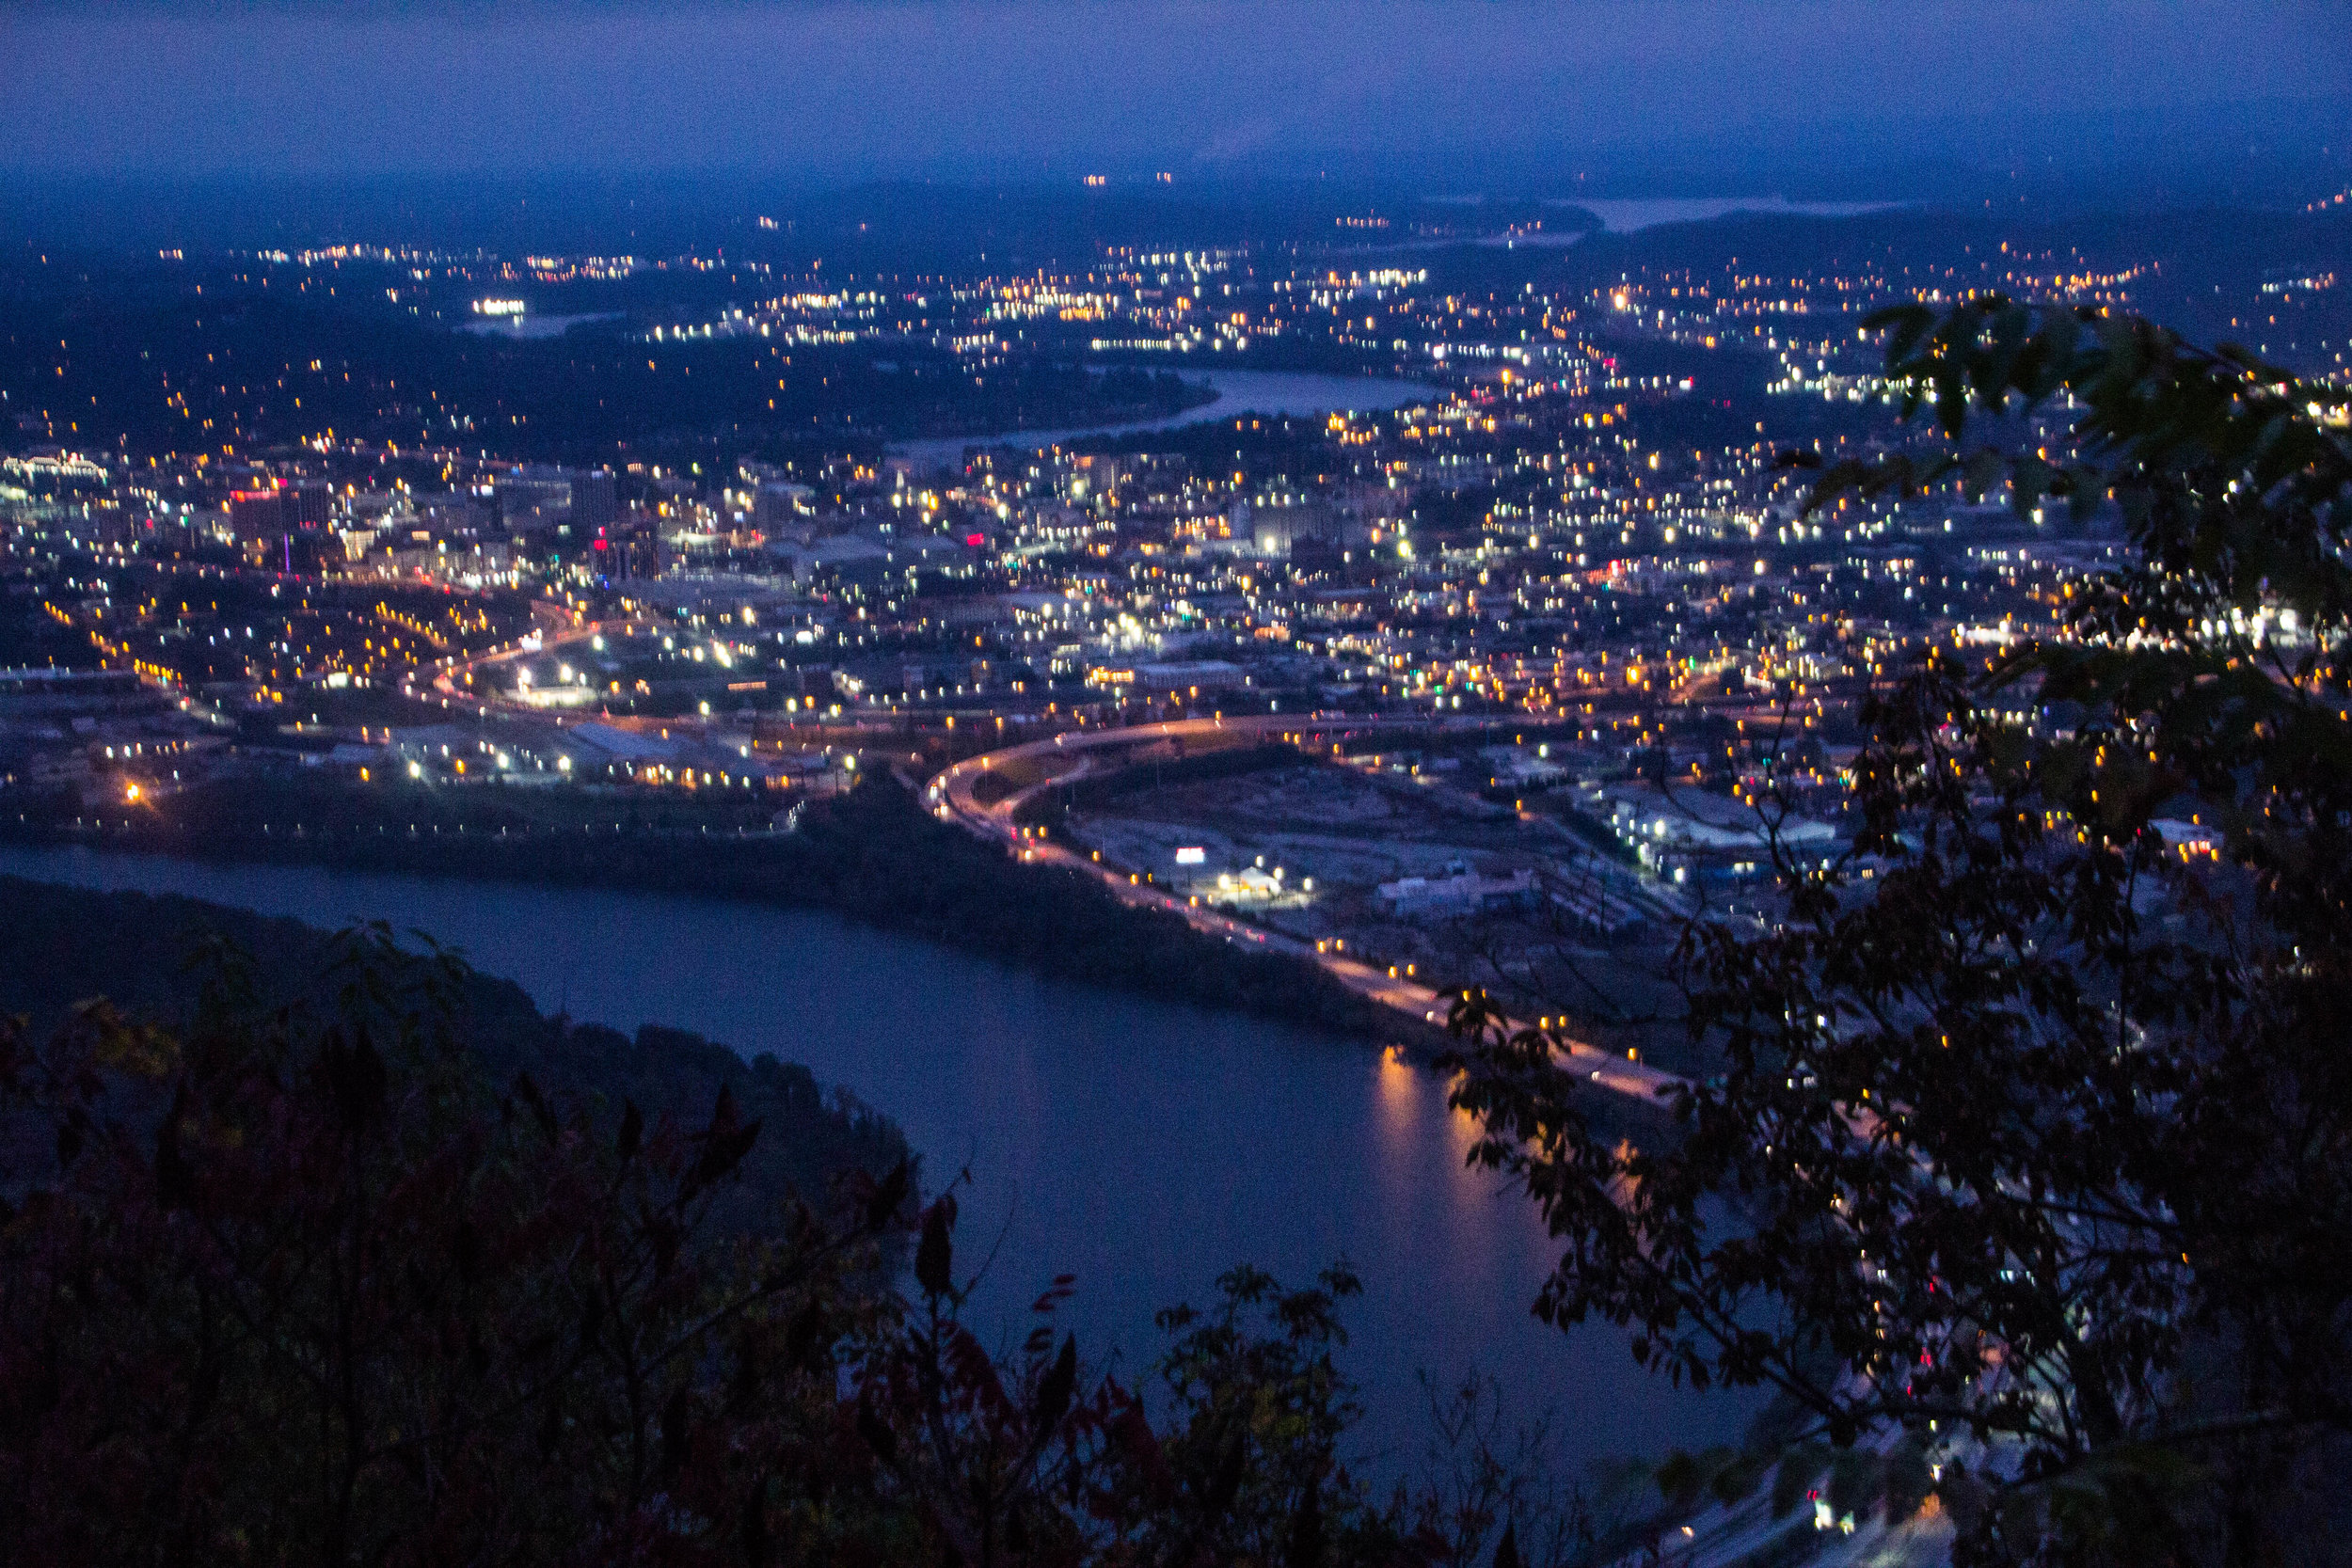 point-park-lookout-mountain-chattanooga-at-night-14.jpg